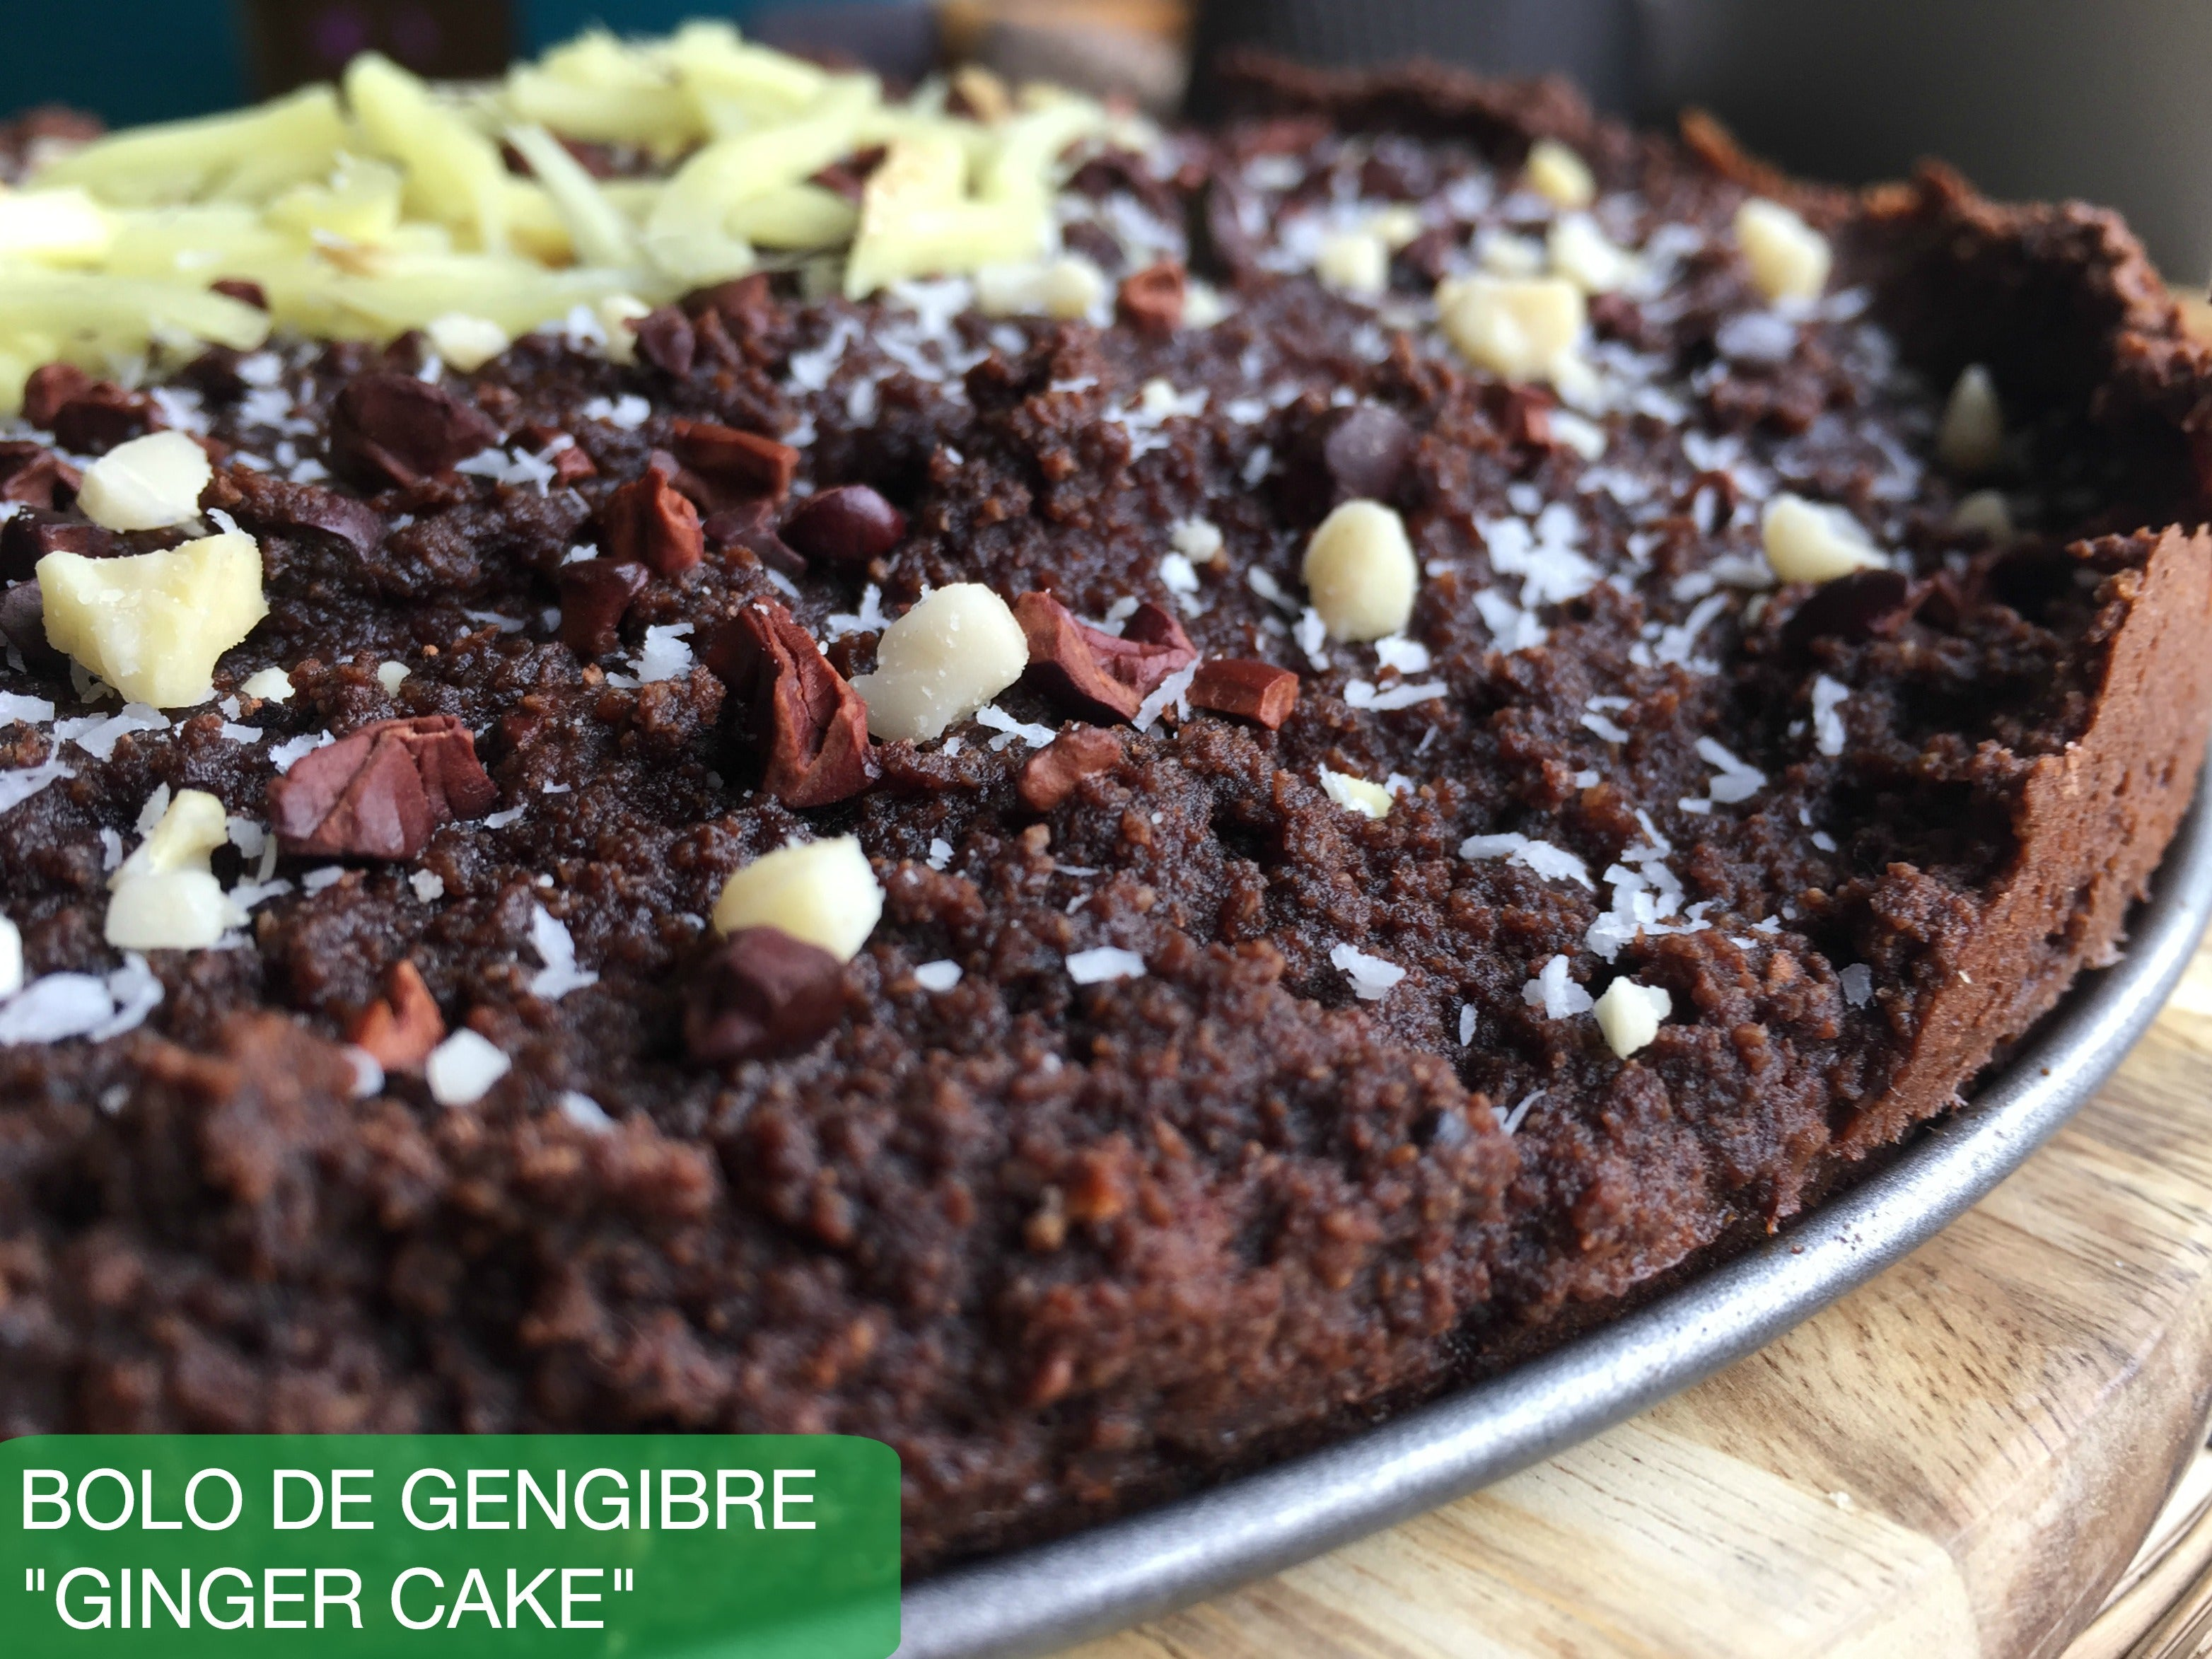 Chocolate & Ginger Cake (Portugal)